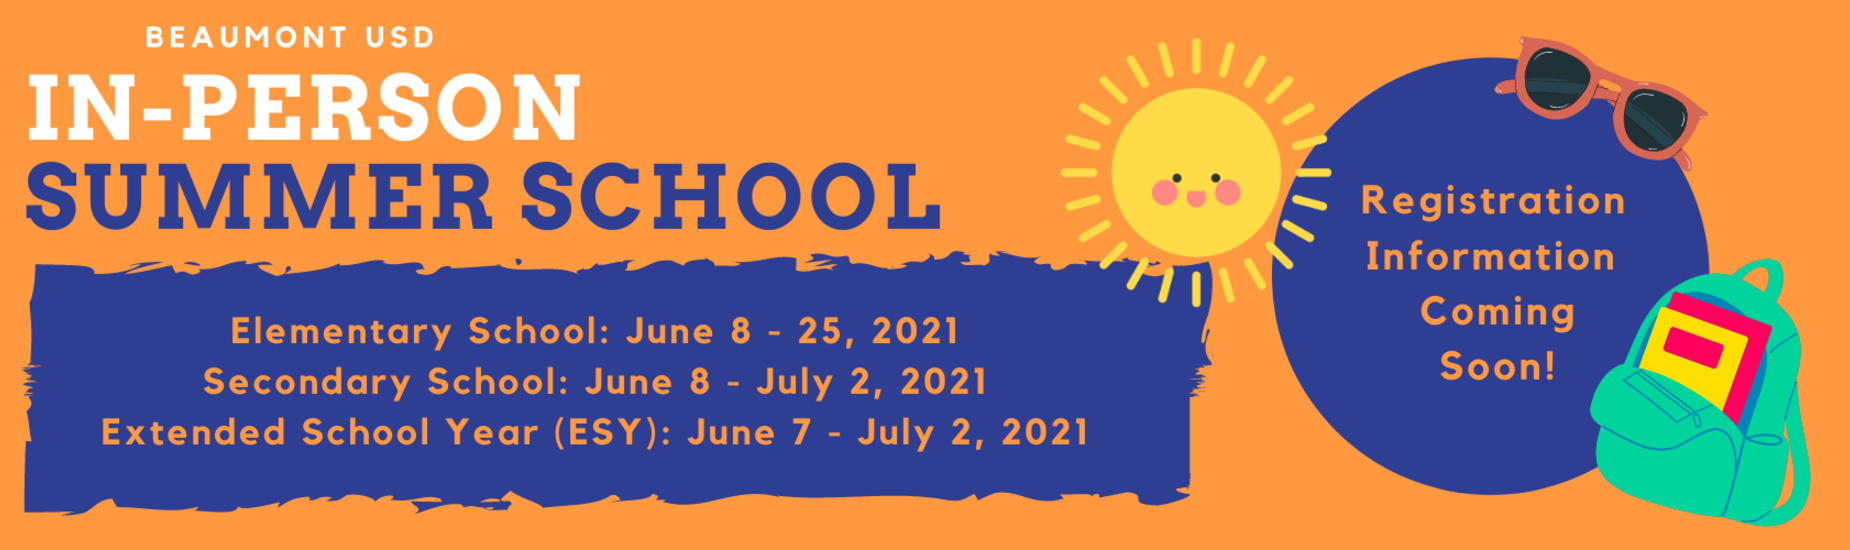 Pictures of a Sun, Backpack, and Sunglasses with Text that says Summer School (Registration Information to Come)